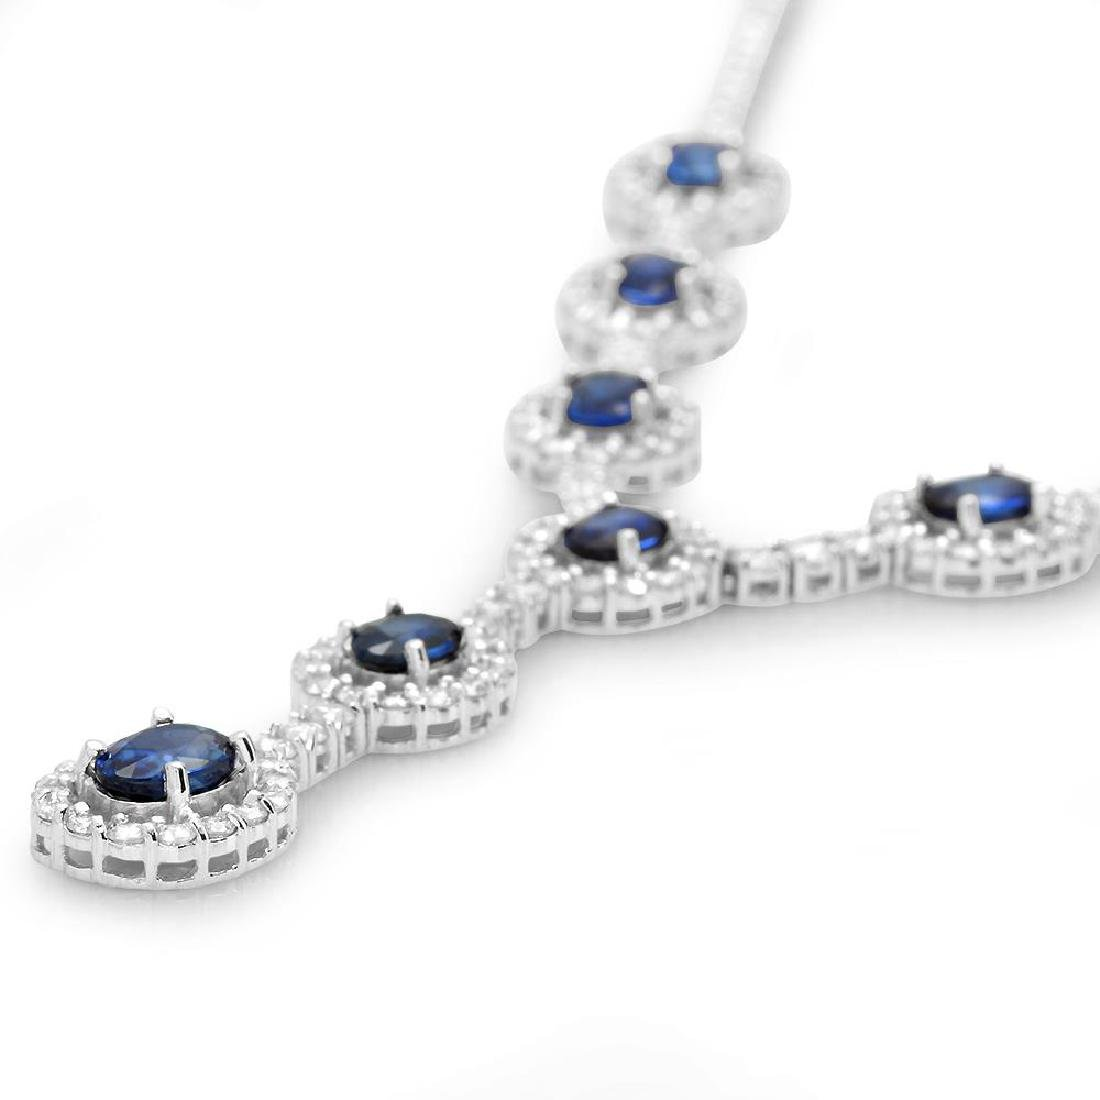 14K Gold 5.02ct Sapphire 5.67cts Diamond Necklace - 2